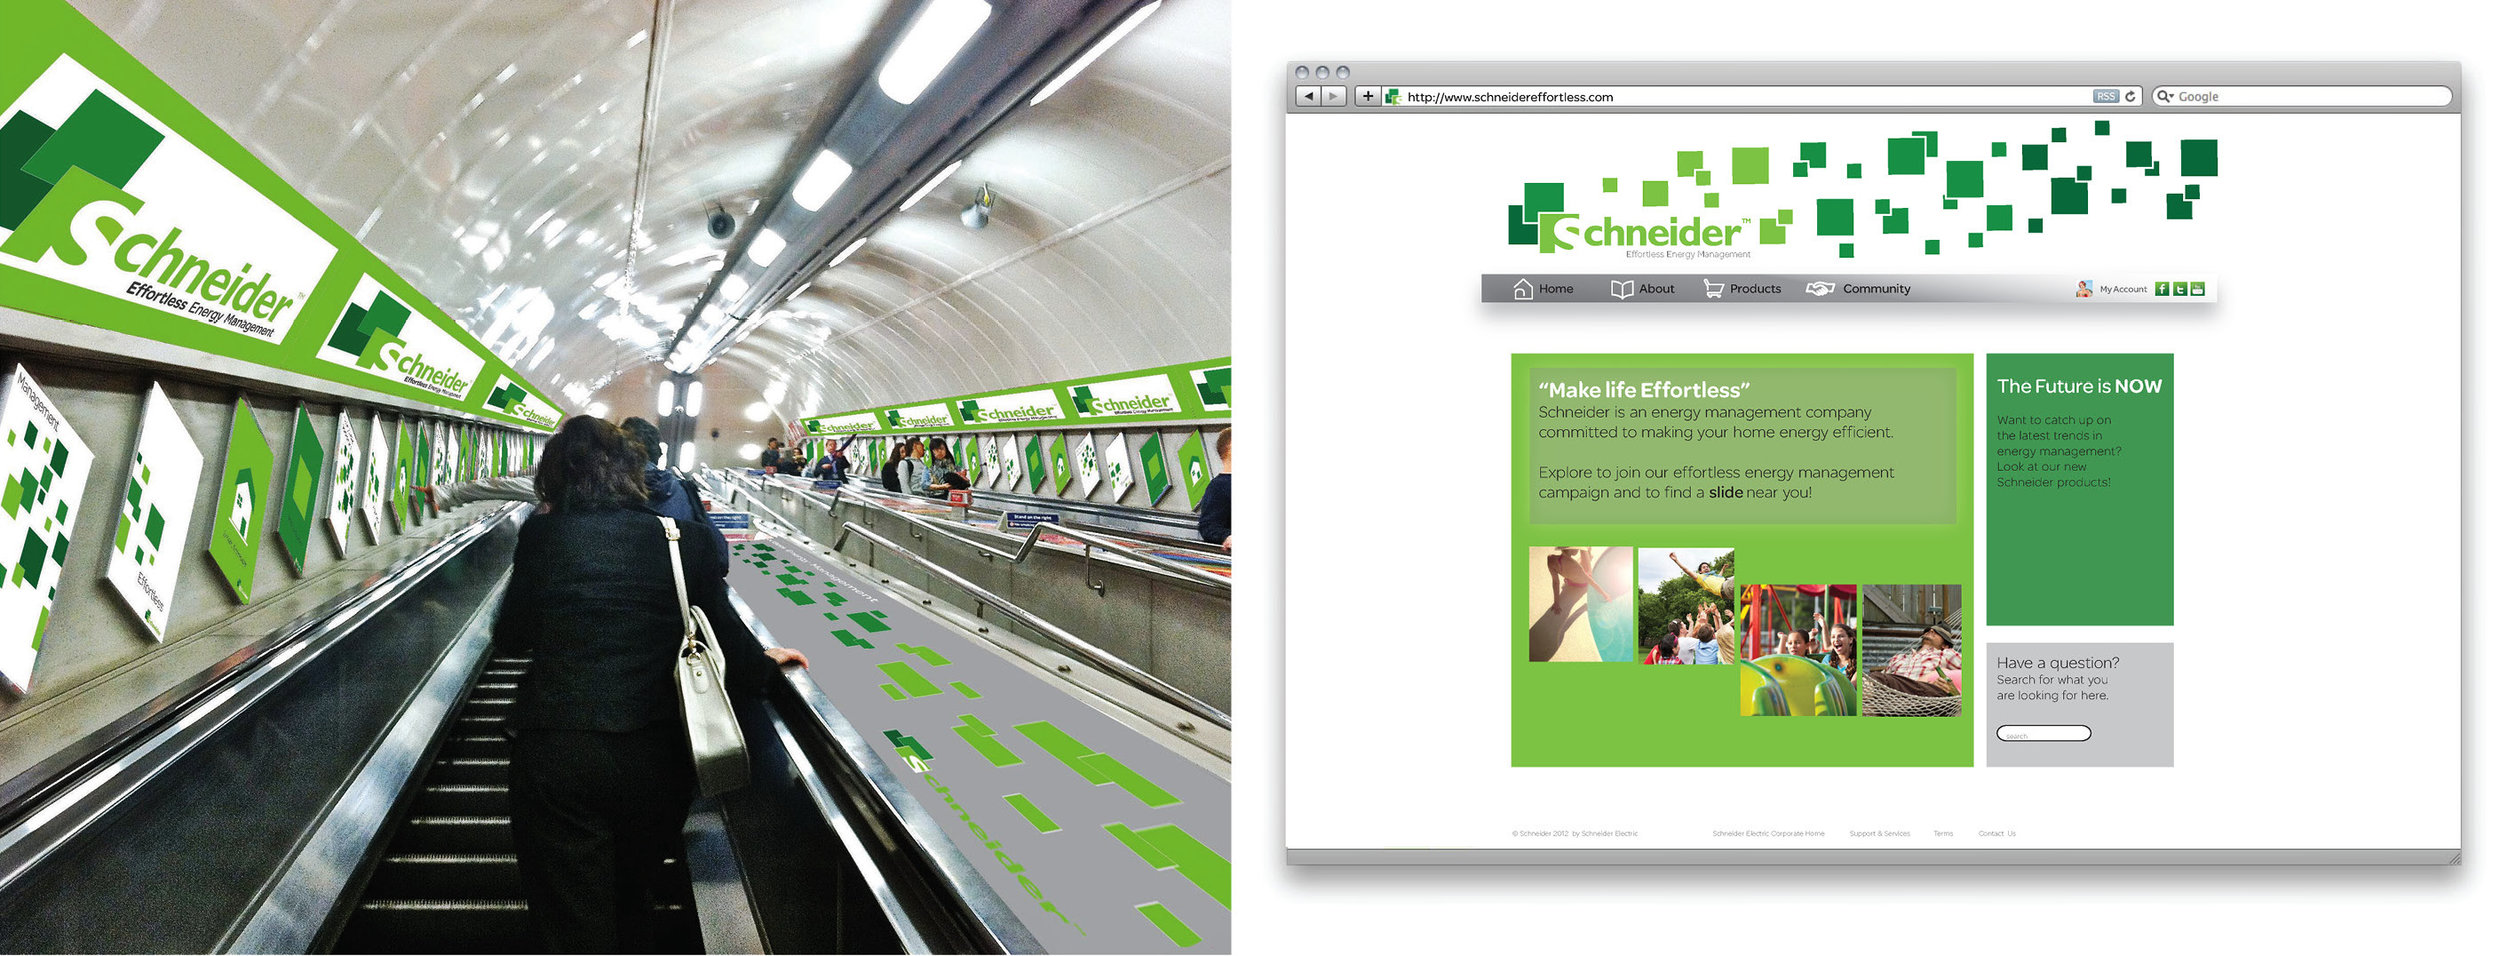 """""""Make Life Effortless"""" took a tongue-in-cheek attitude with guerilla marketing strategies, including turning London Tube escalators into large slides."""